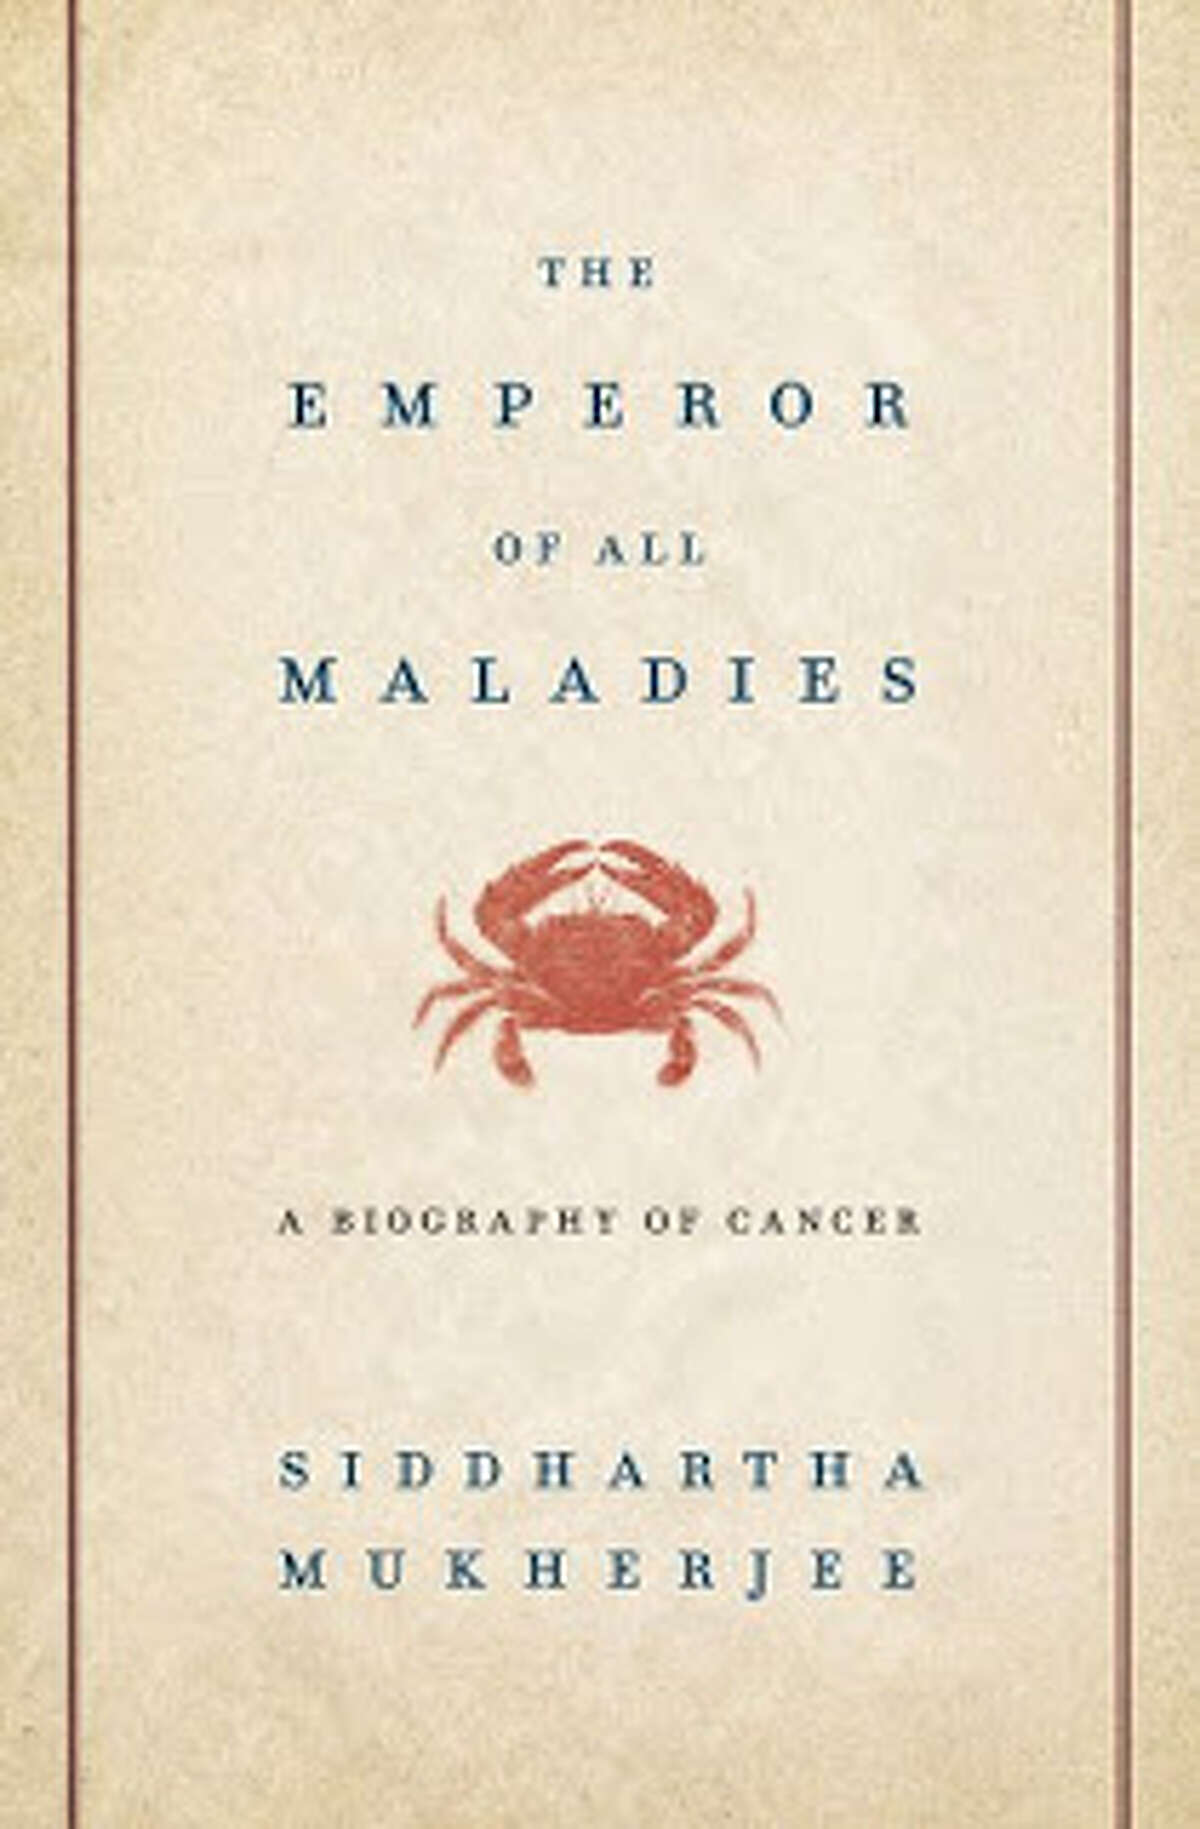 """Siddhartha Mukherjee, a cancer researcher and oncologist, is the author of """"The Emperor of All Maladies."""""""